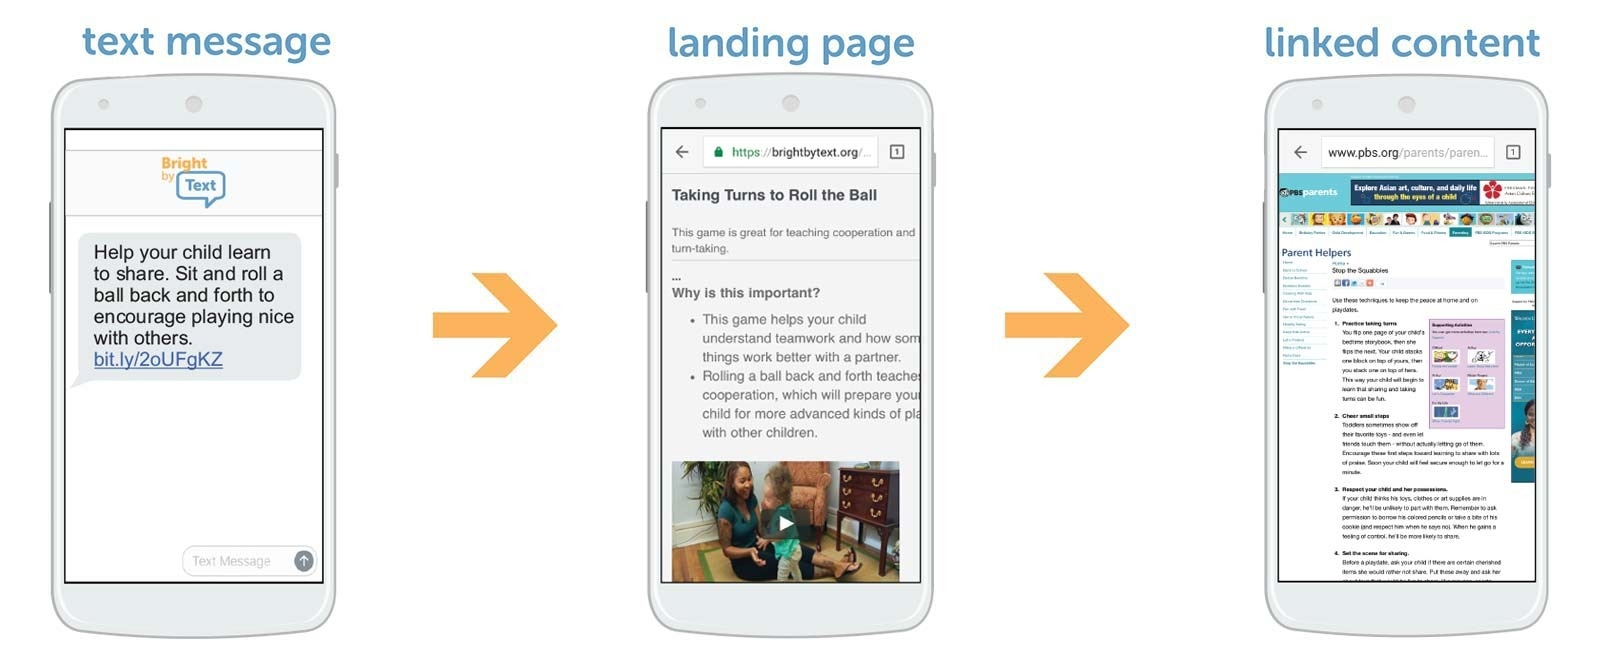 Image of BBT text message sent landing page and linked content